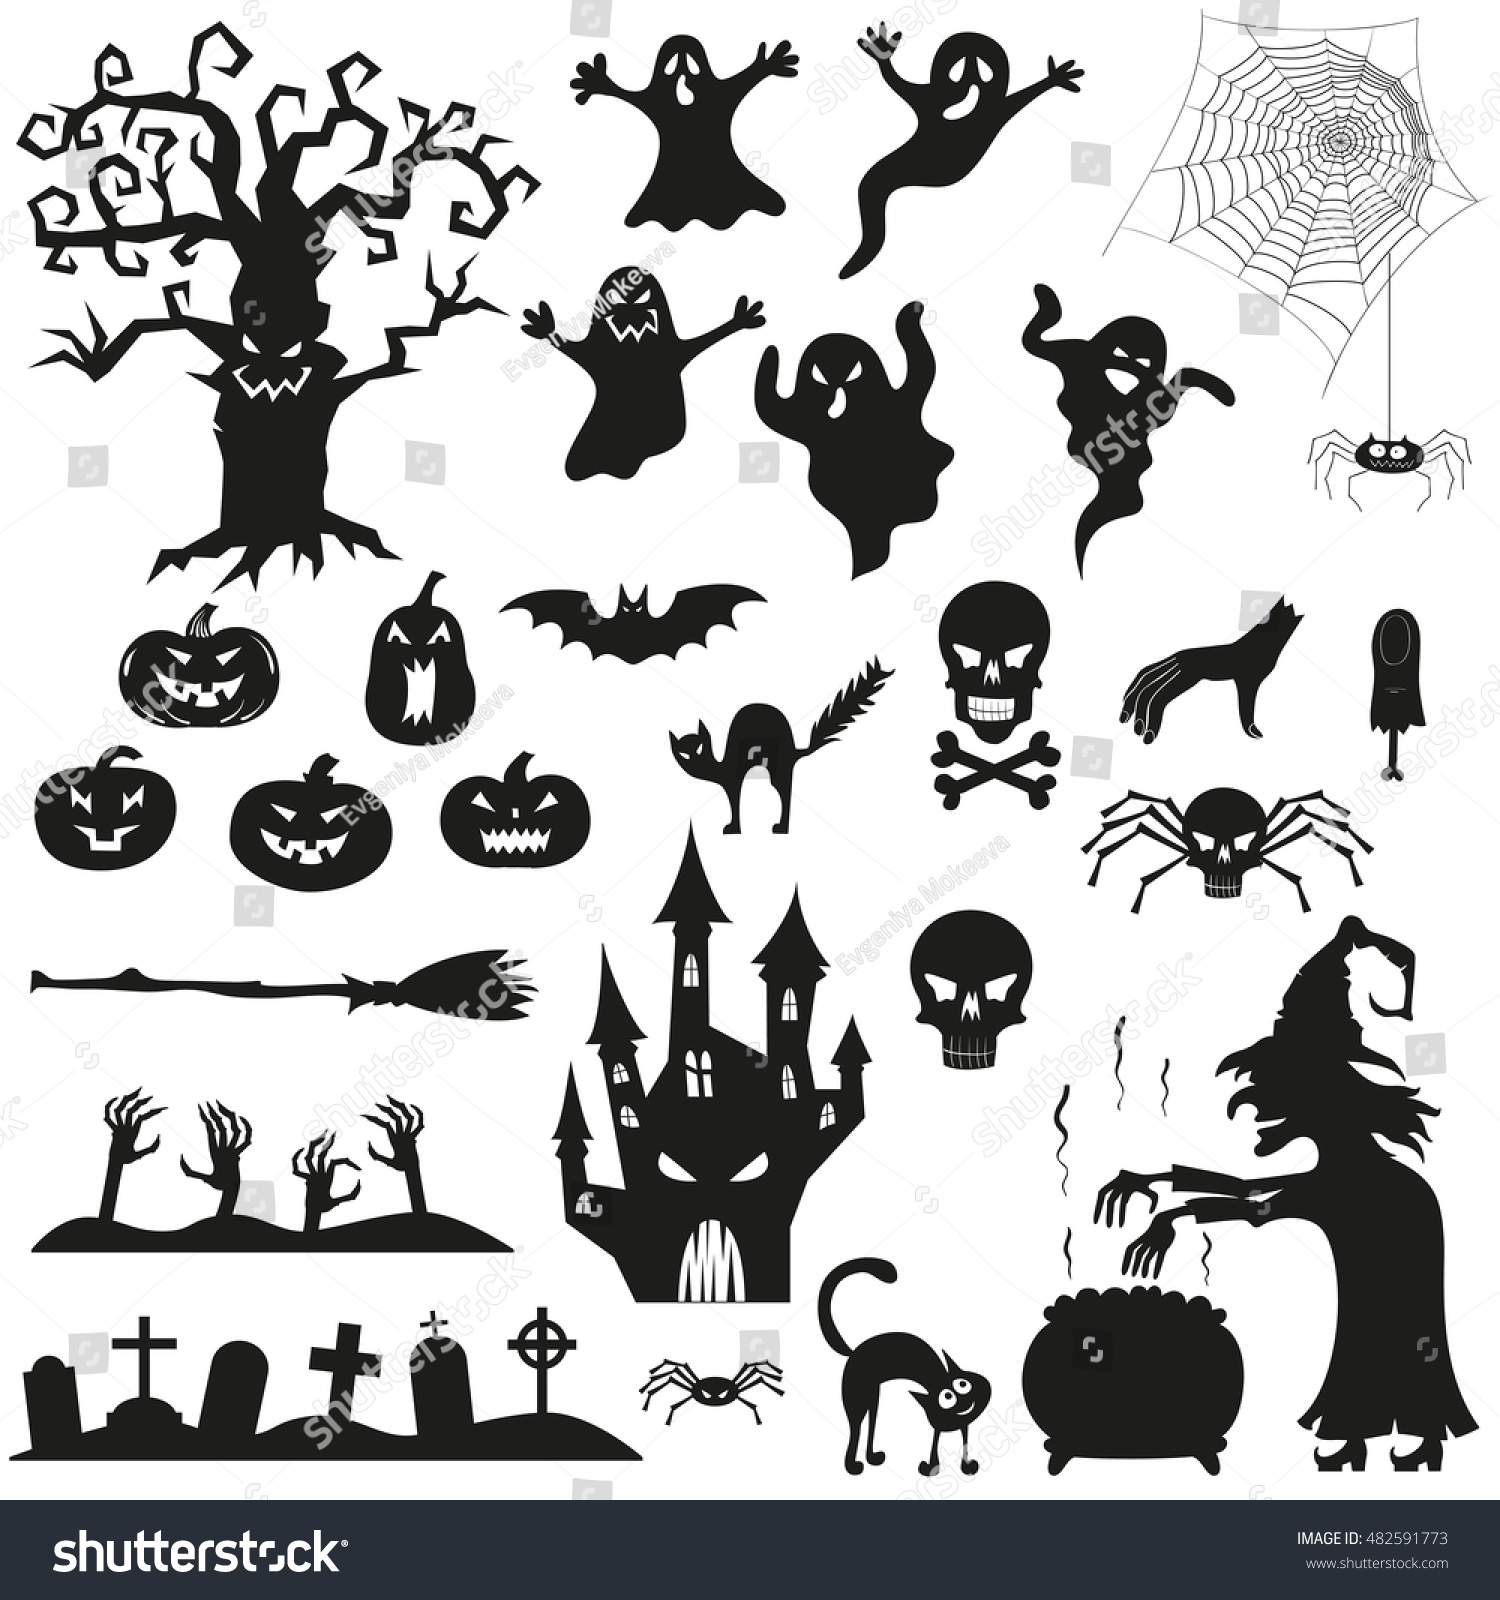 Halloween Spooky Black Silhouettes Vector Icons Stock